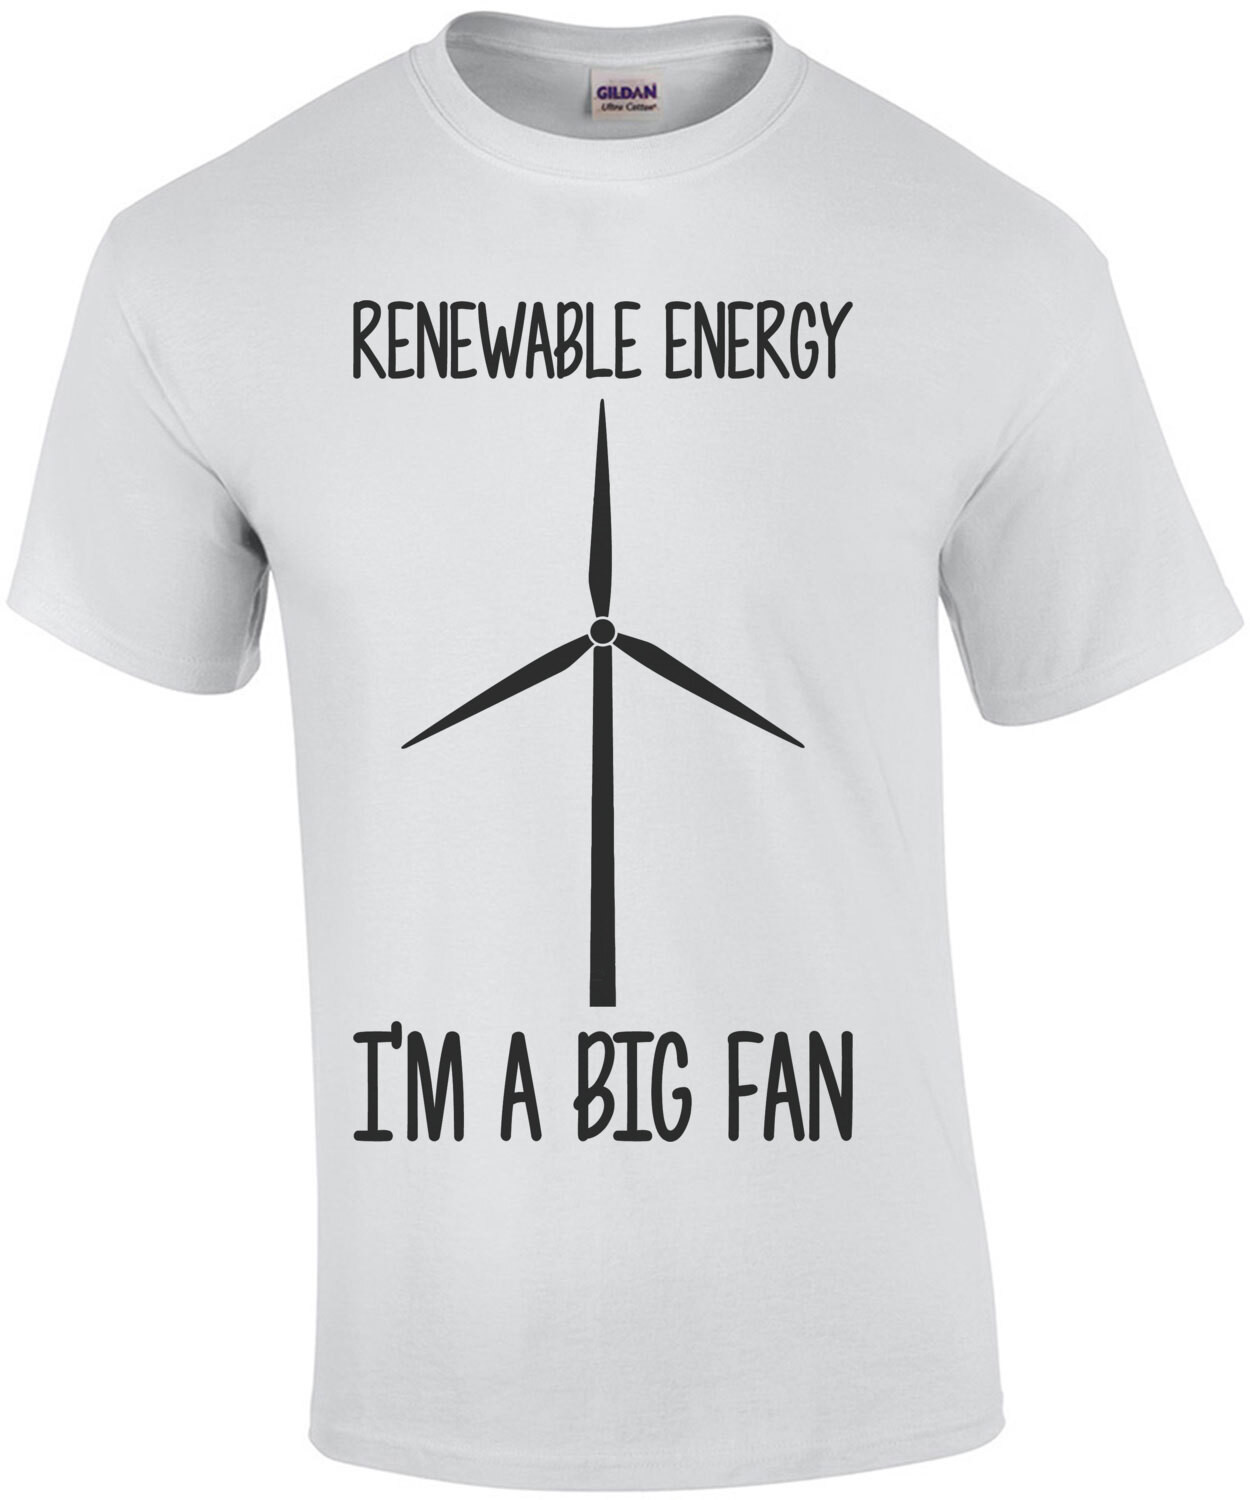 Renewable Energy - I'm a big fan - funny pun t-shirt